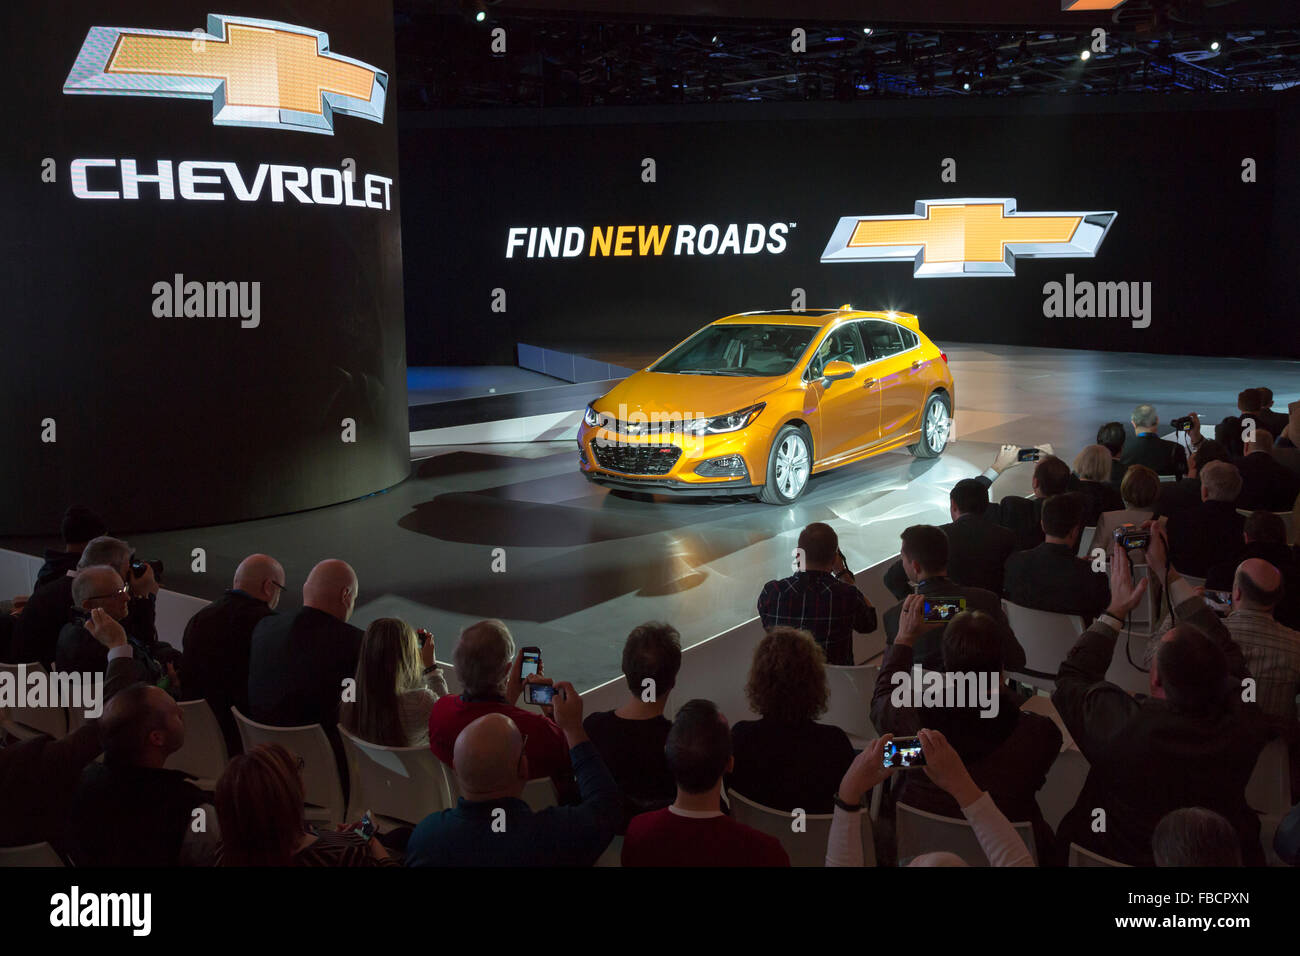 Detroit, Michigan - The Chevrolet Cruze hatchback is introduced at the North American International Auto Show. - Stock Image